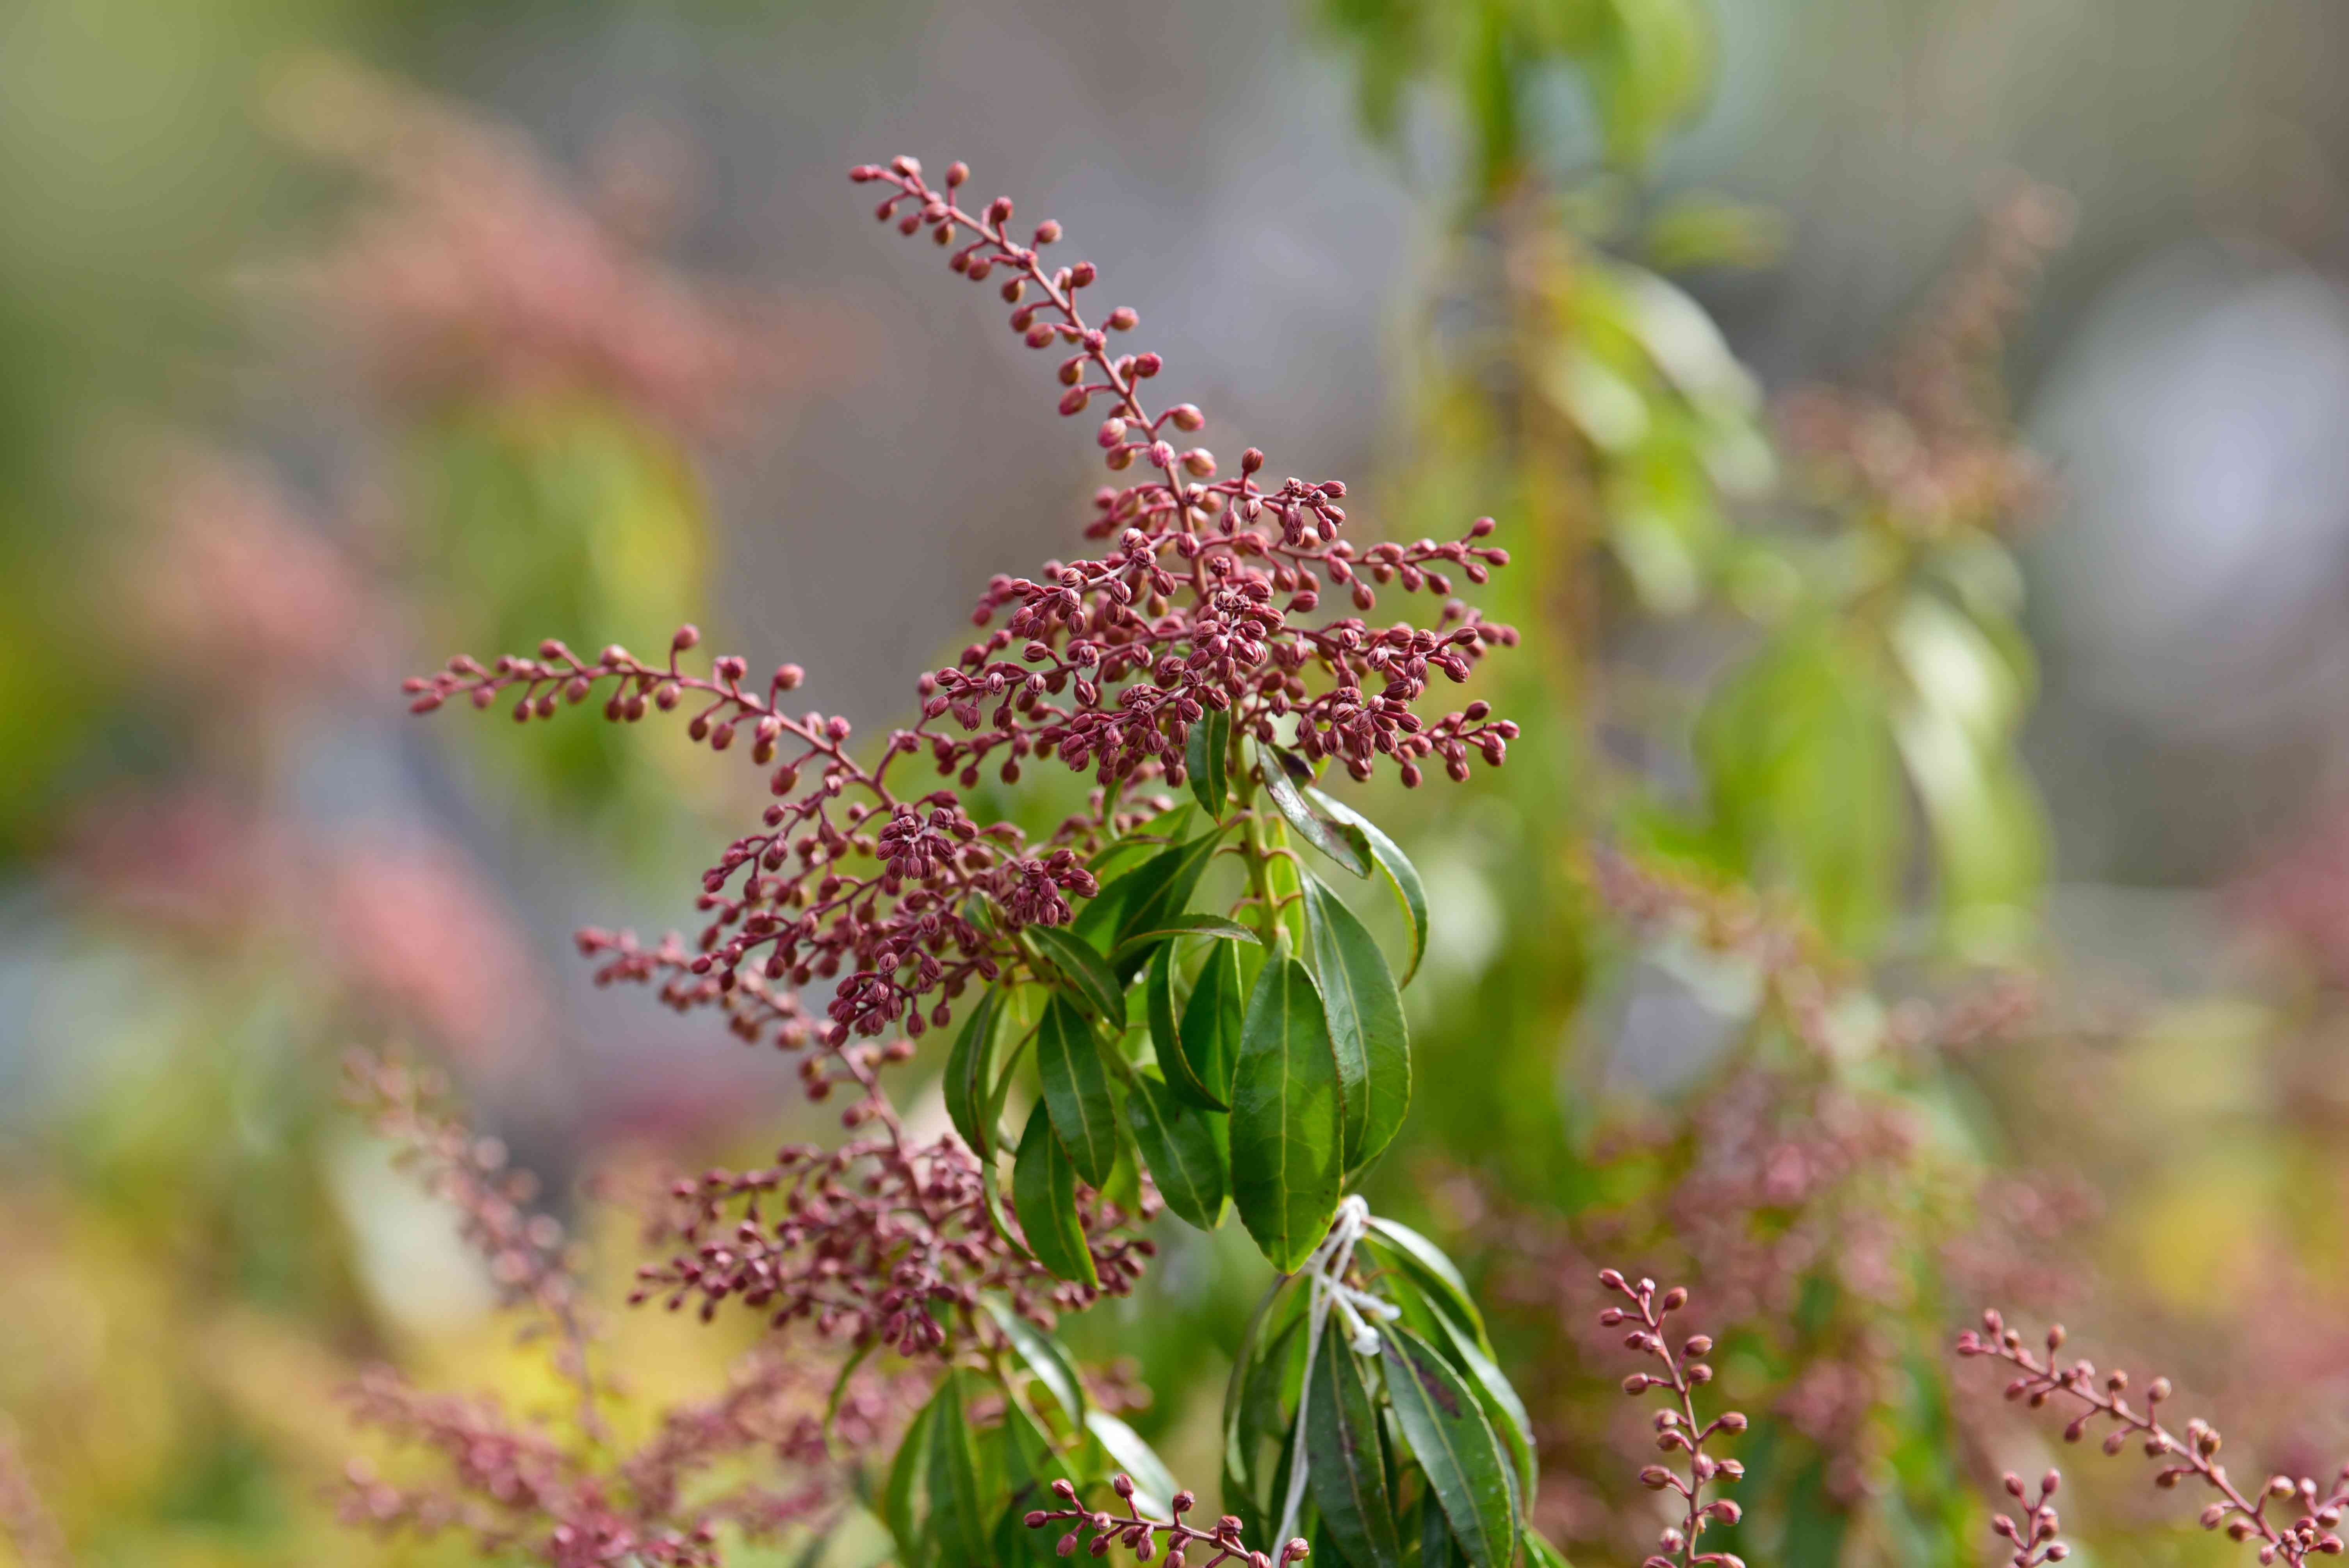 Japanese andromeda plant with small pink buds on flower stalk and leaves